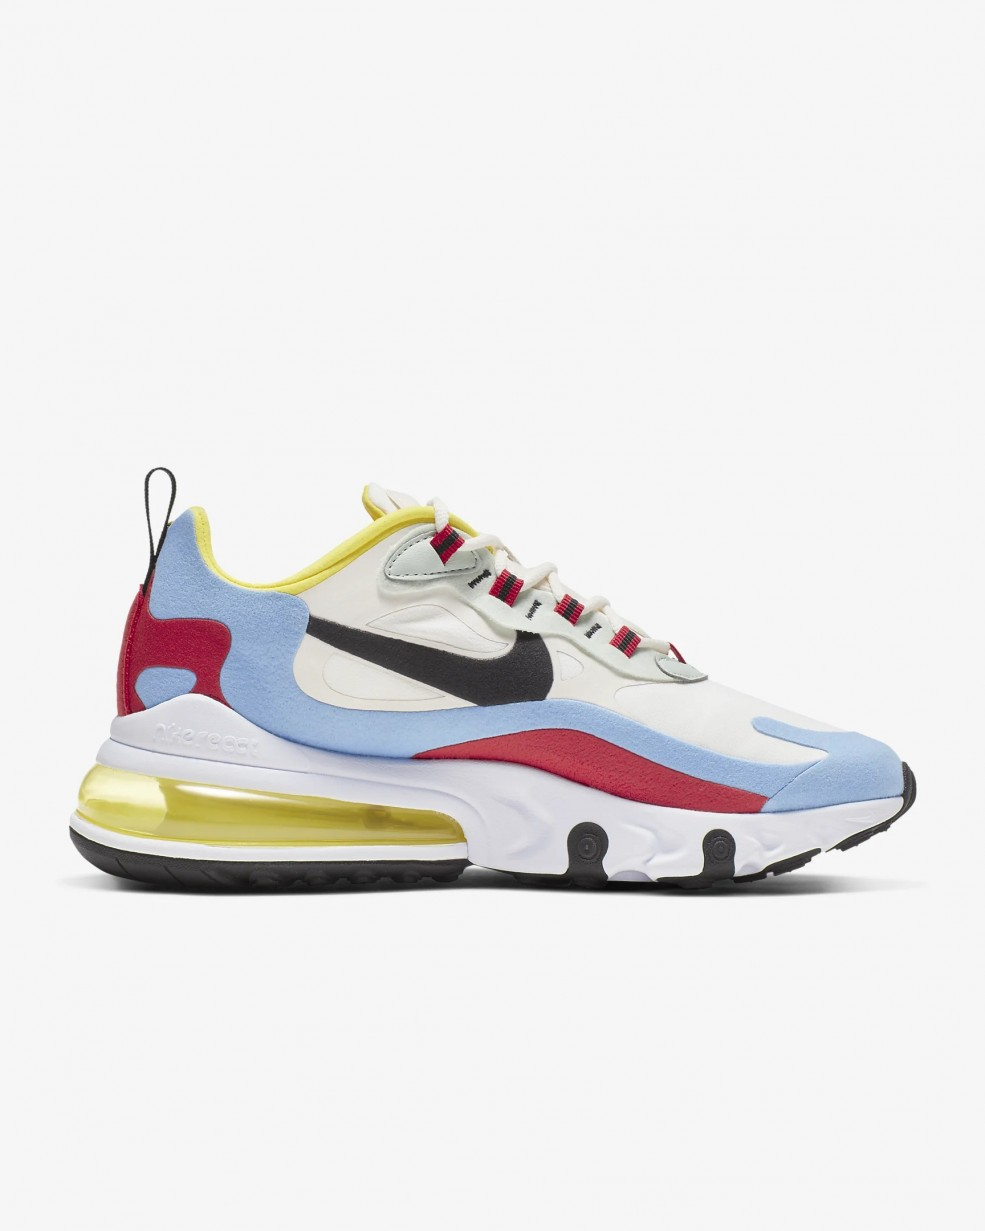 Nike Femme Air Max 270 React 'Bauhaus' AT6174-002 ...